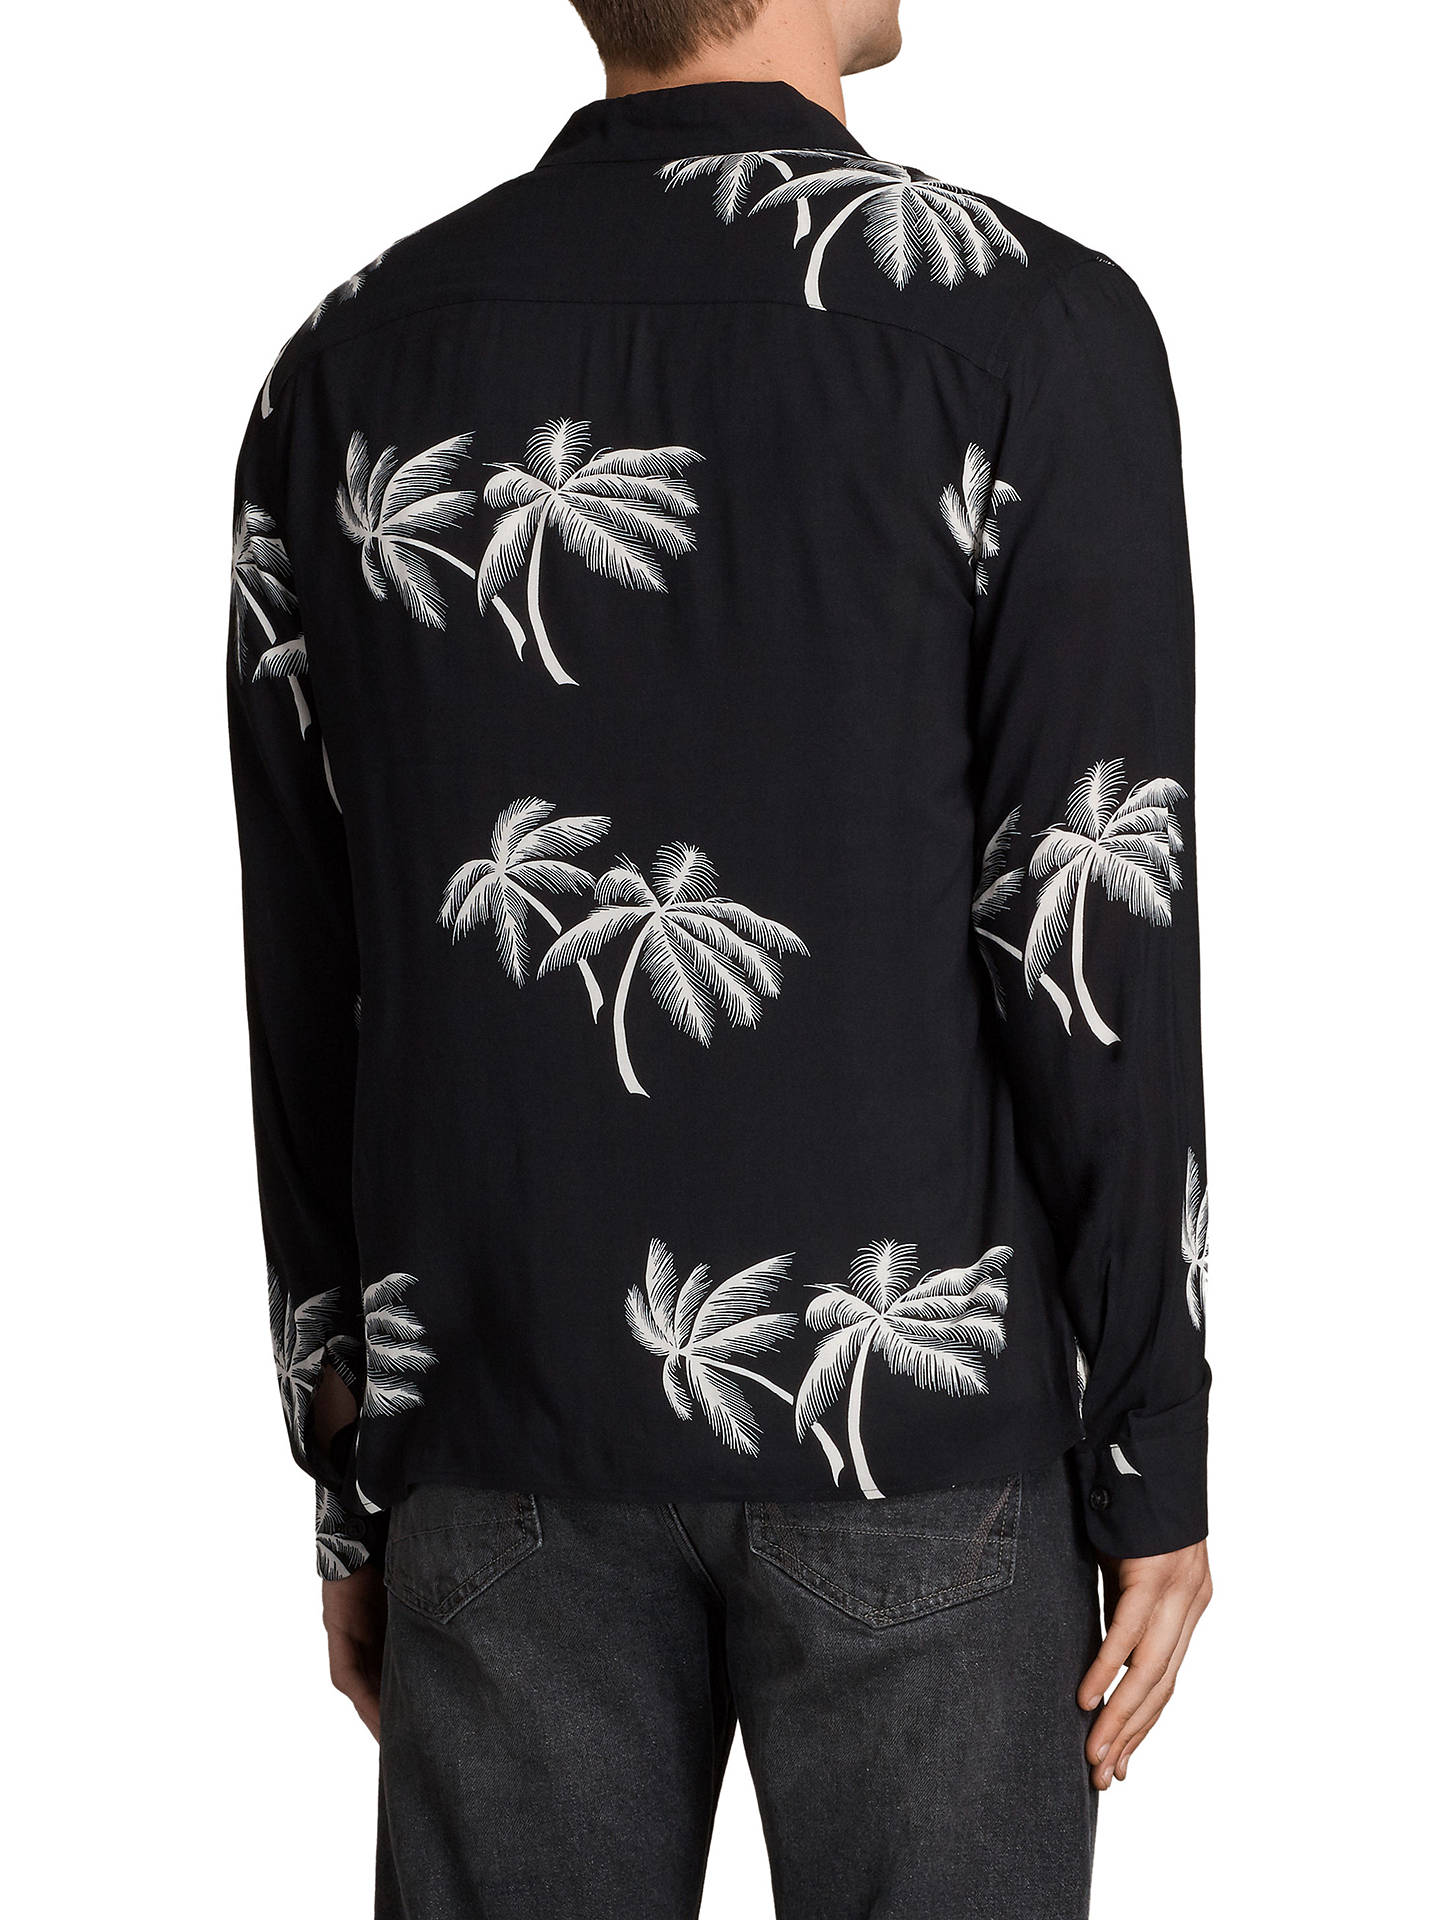 4c85d0ff ... Buy AllSaints Offshore Long Sleeve Shirt, Black, XS Online at  johnlewis.com ...